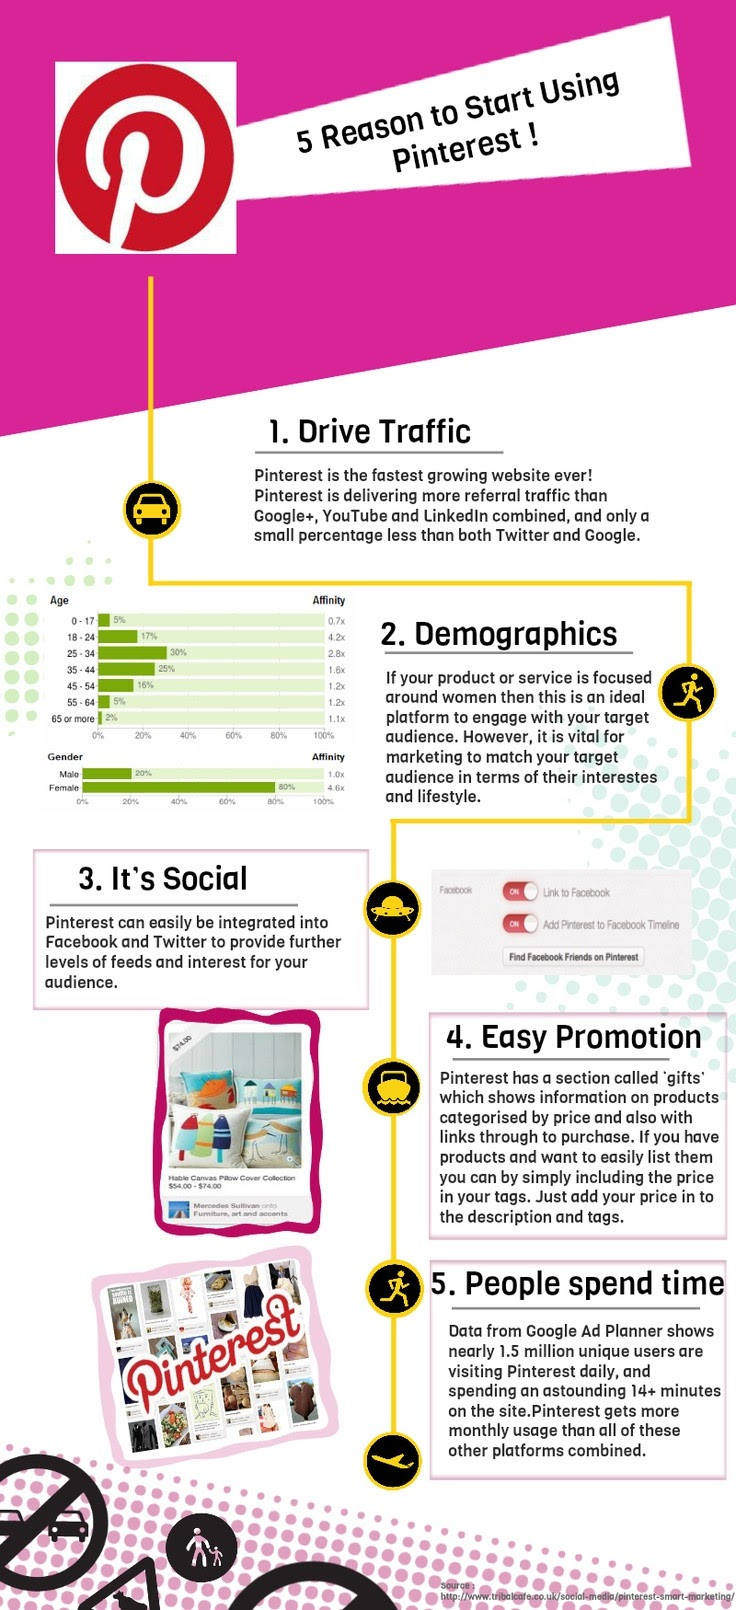 5-reasons-to-start-using-pinterest #infographic